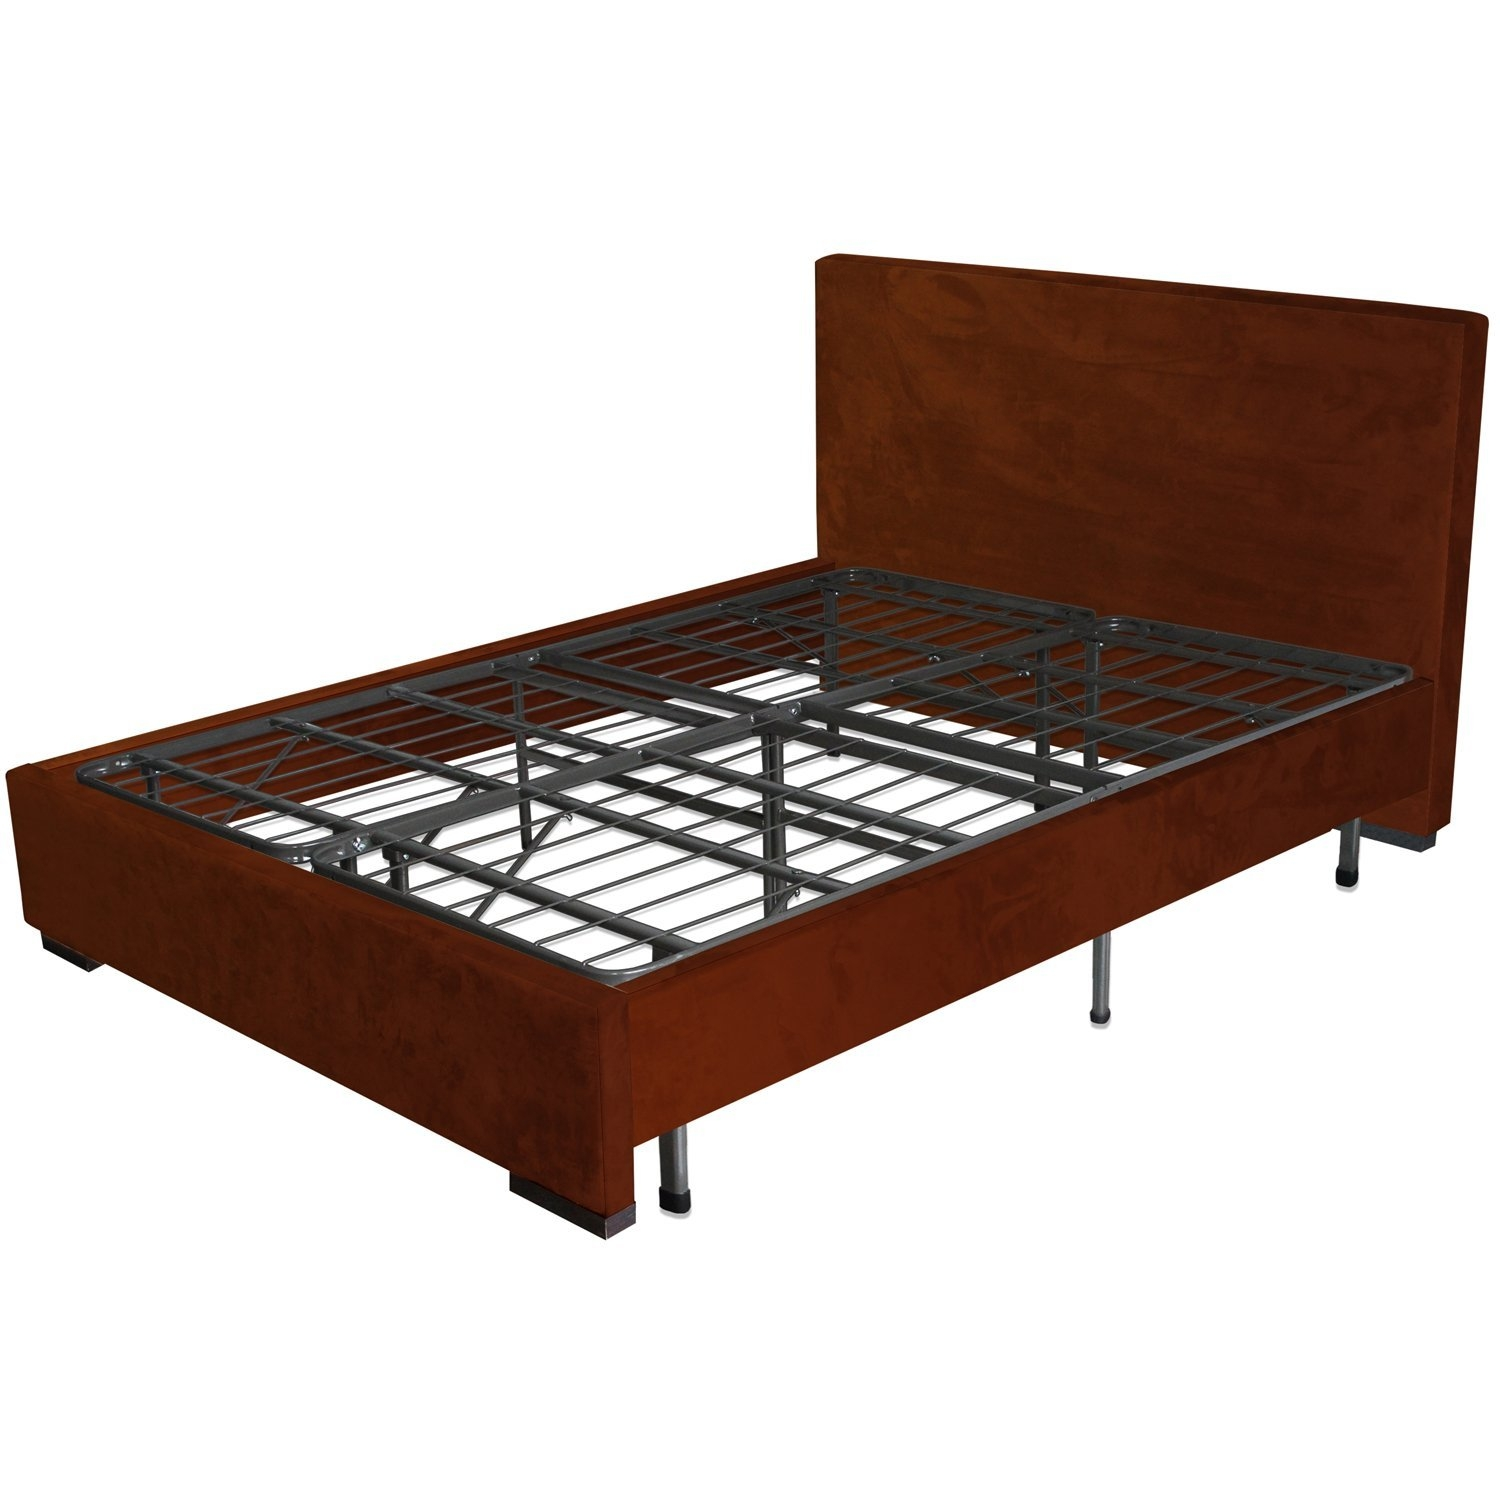 retail price 17900 - Extra Long Twin Bed Frames